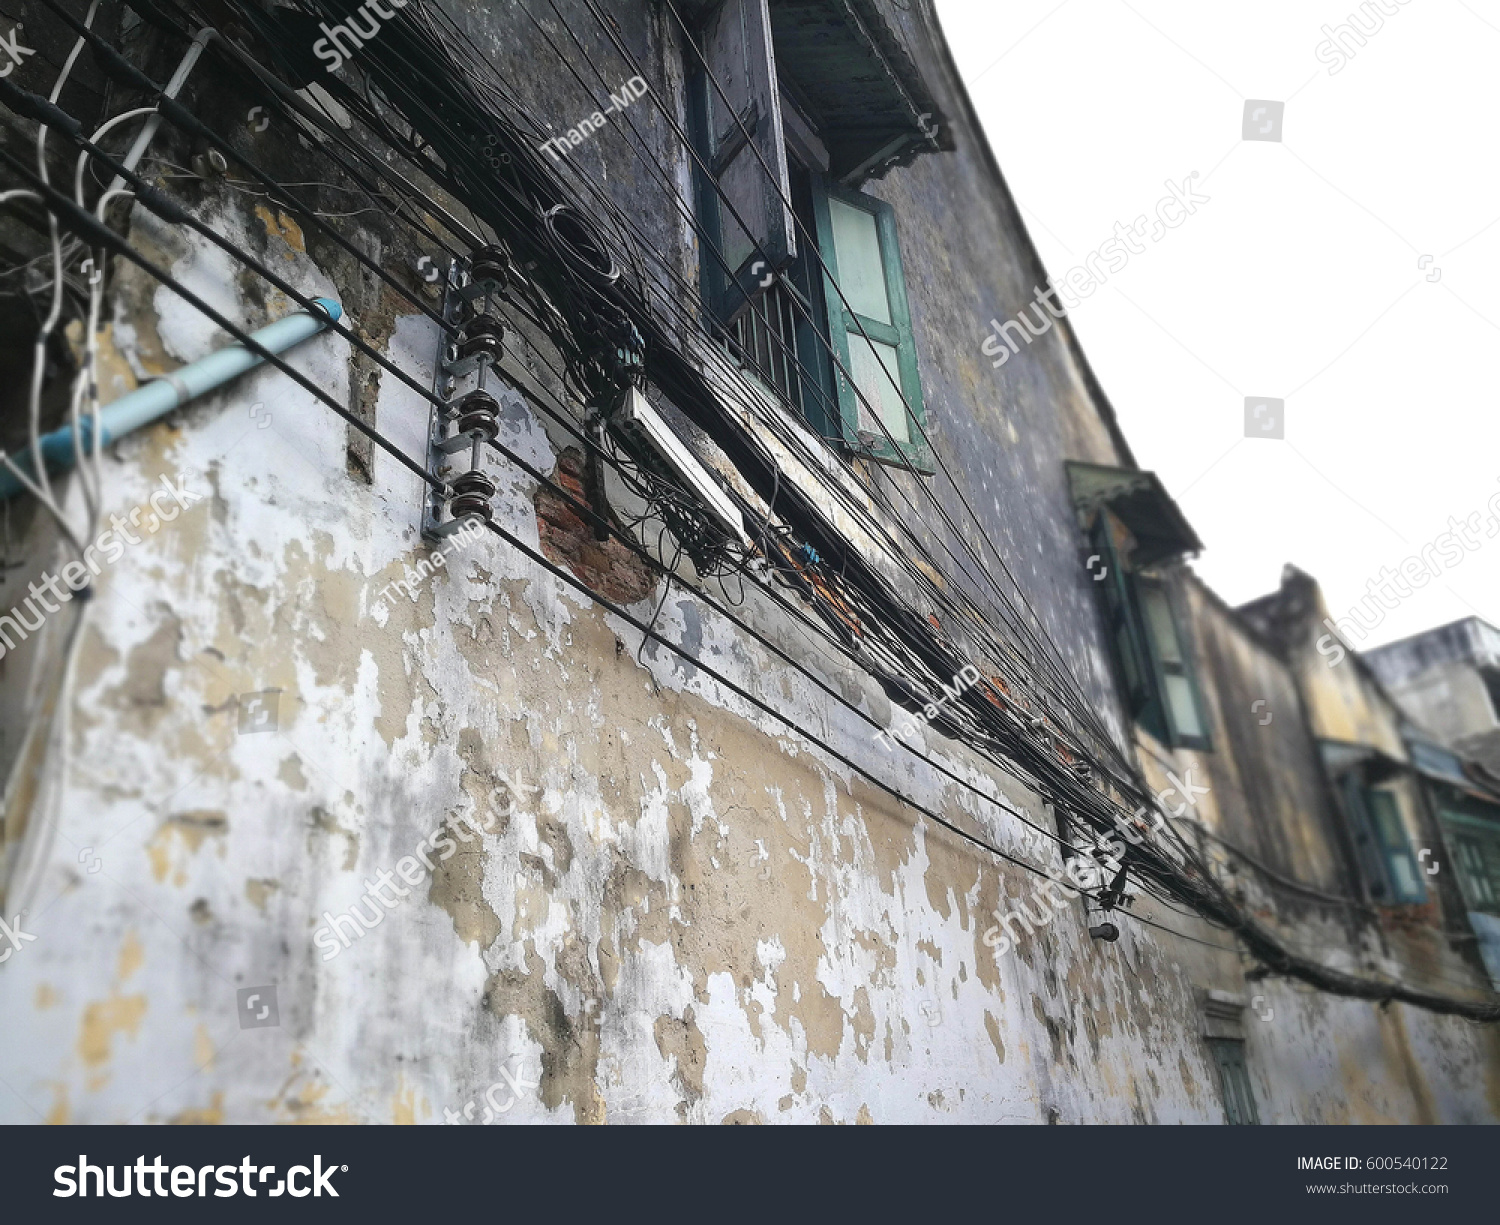 Wires Hanging On Old House Wire Stock Photo (Edit Now) 600540122 ...